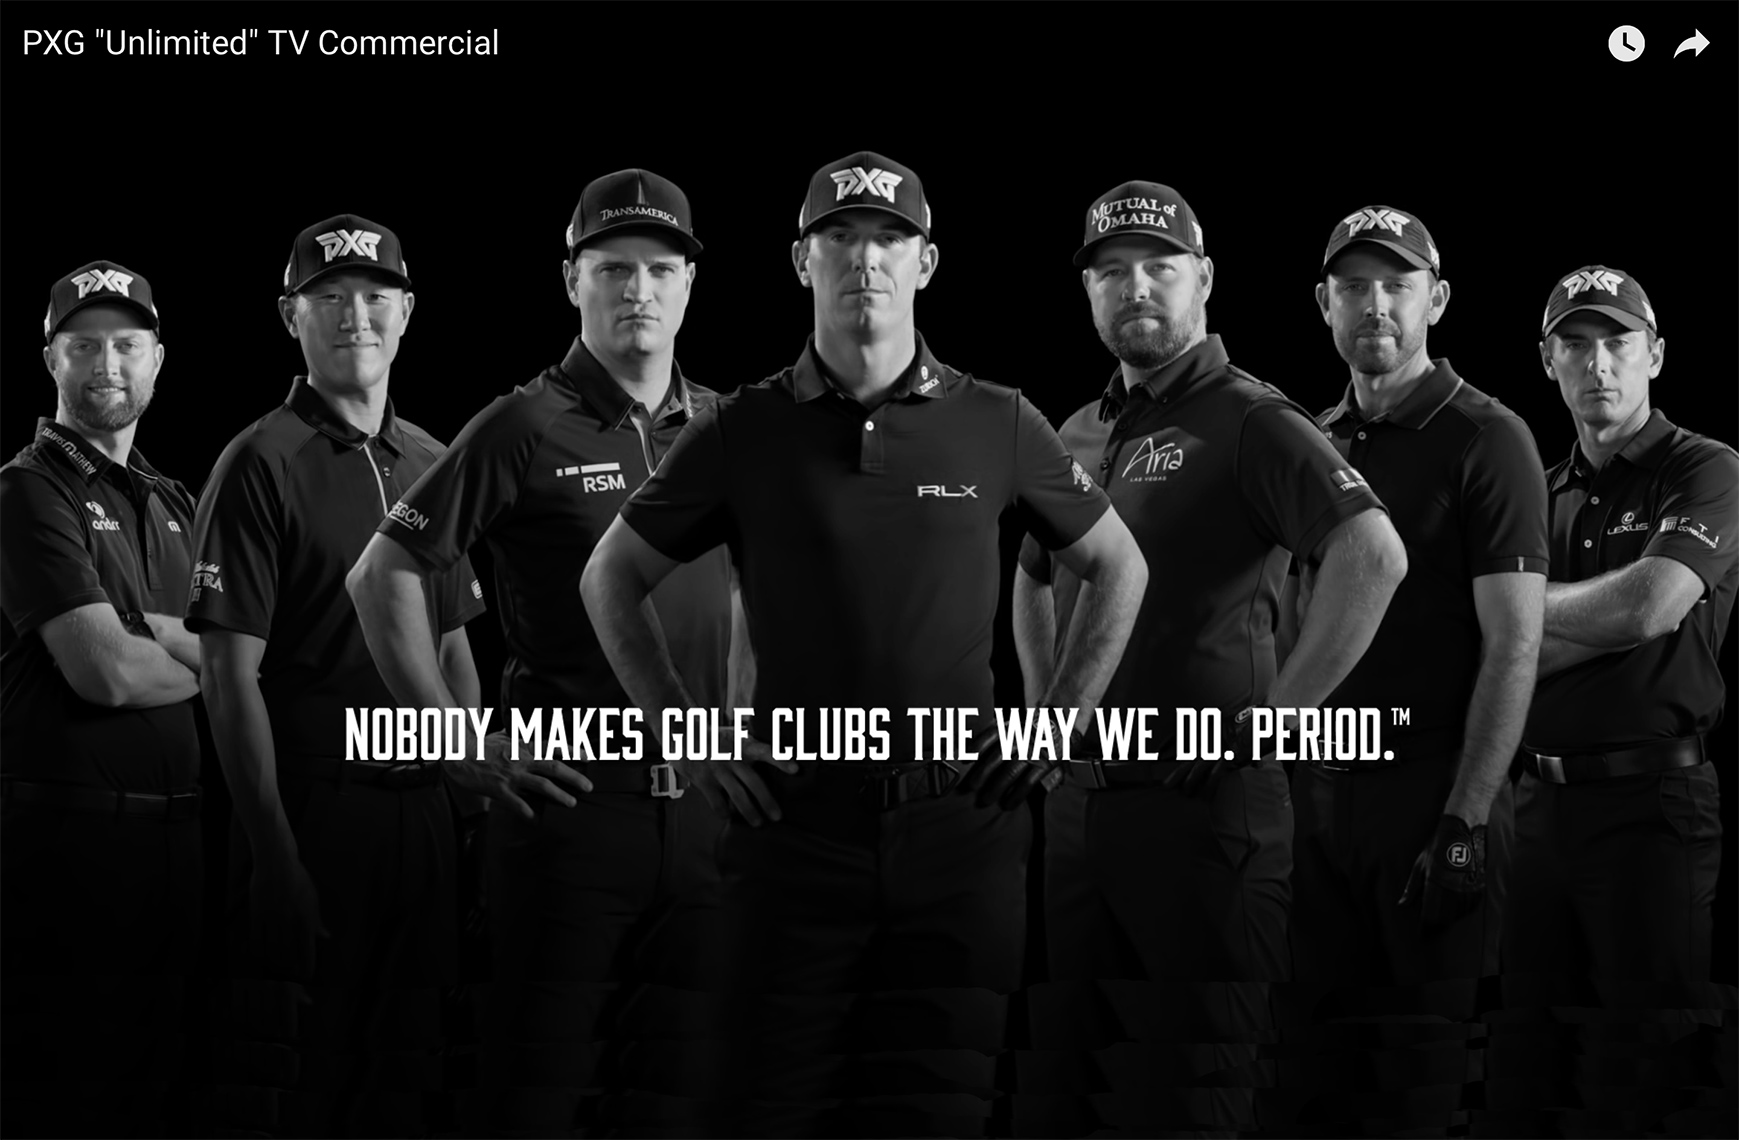 PXG Unlimited Commercial